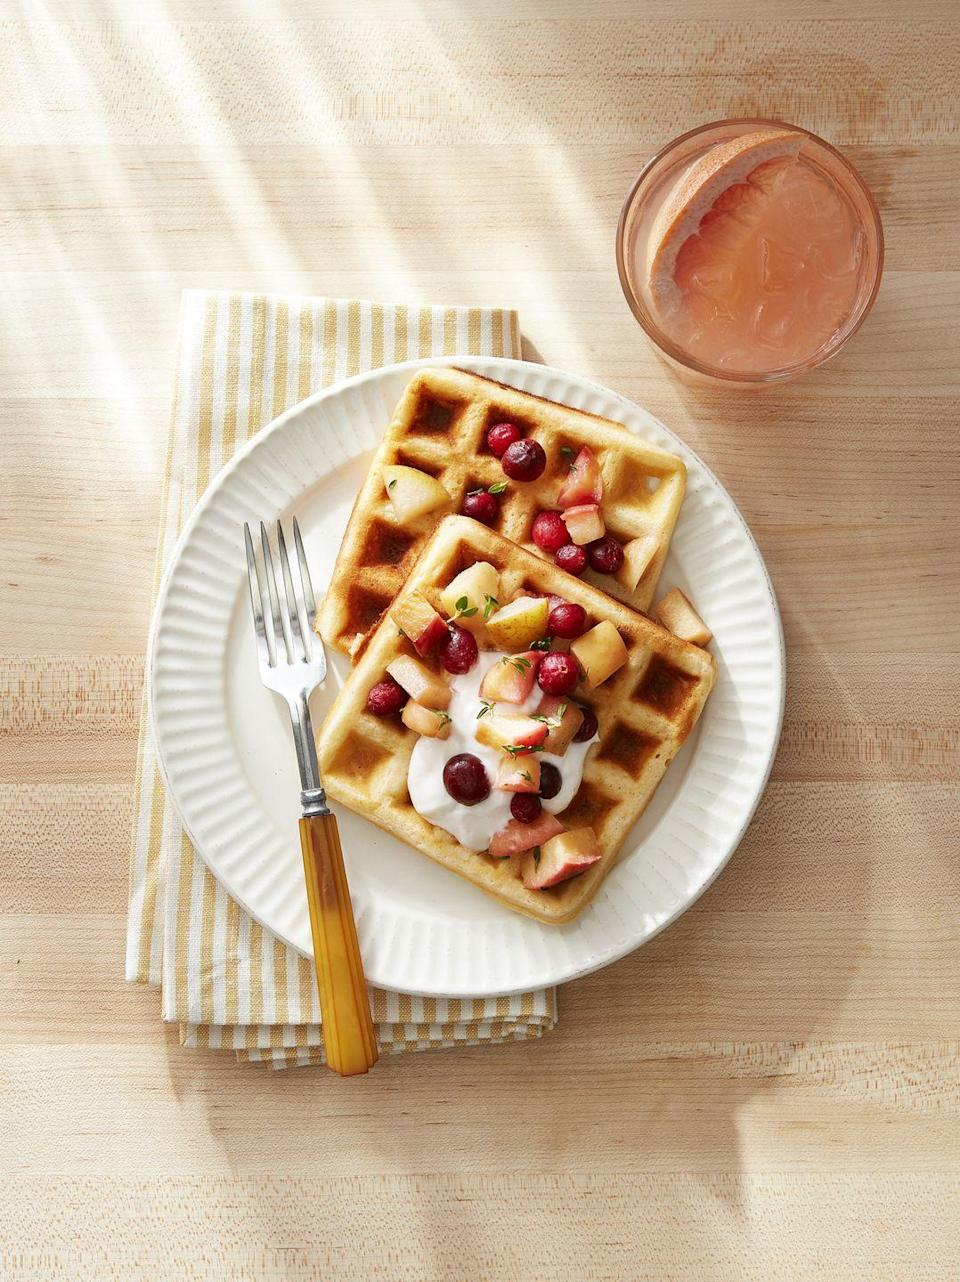 """<p>Treat yourself and the family to a decadent-but-light brunch by whipping this batter Saturday, and storing it in the fridge until the morning.</p><p><strong><a href=""""https://www.countryliving.com/food-drinks/a34275535/overnight-yeasted-waffles/"""" rel=""""nofollow noopener"""" target=""""_blank"""" data-ylk=""""slk:Get the recipe"""" class=""""link rapid-noclick-resp"""">Get the recipe</a>.</strong></p><p><strong><a class=""""link rapid-noclick-resp"""" href=""""https://www.amazon.com/DASH-No-Drip-Belgian-Waffle-Maker/dp/B07BTQGBFW/?tag=syn-yahoo-20&ascsubtag=%5Bartid%7C10050.g.1642%5Bsrc%7Cyahoo-us"""" rel=""""nofollow noopener"""" target=""""_blank"""" data-ylk=""""slk:SHOP WAFFLE MAKERS"""">SHOP WAFFLE MAKERS</a></strong> </p>"""